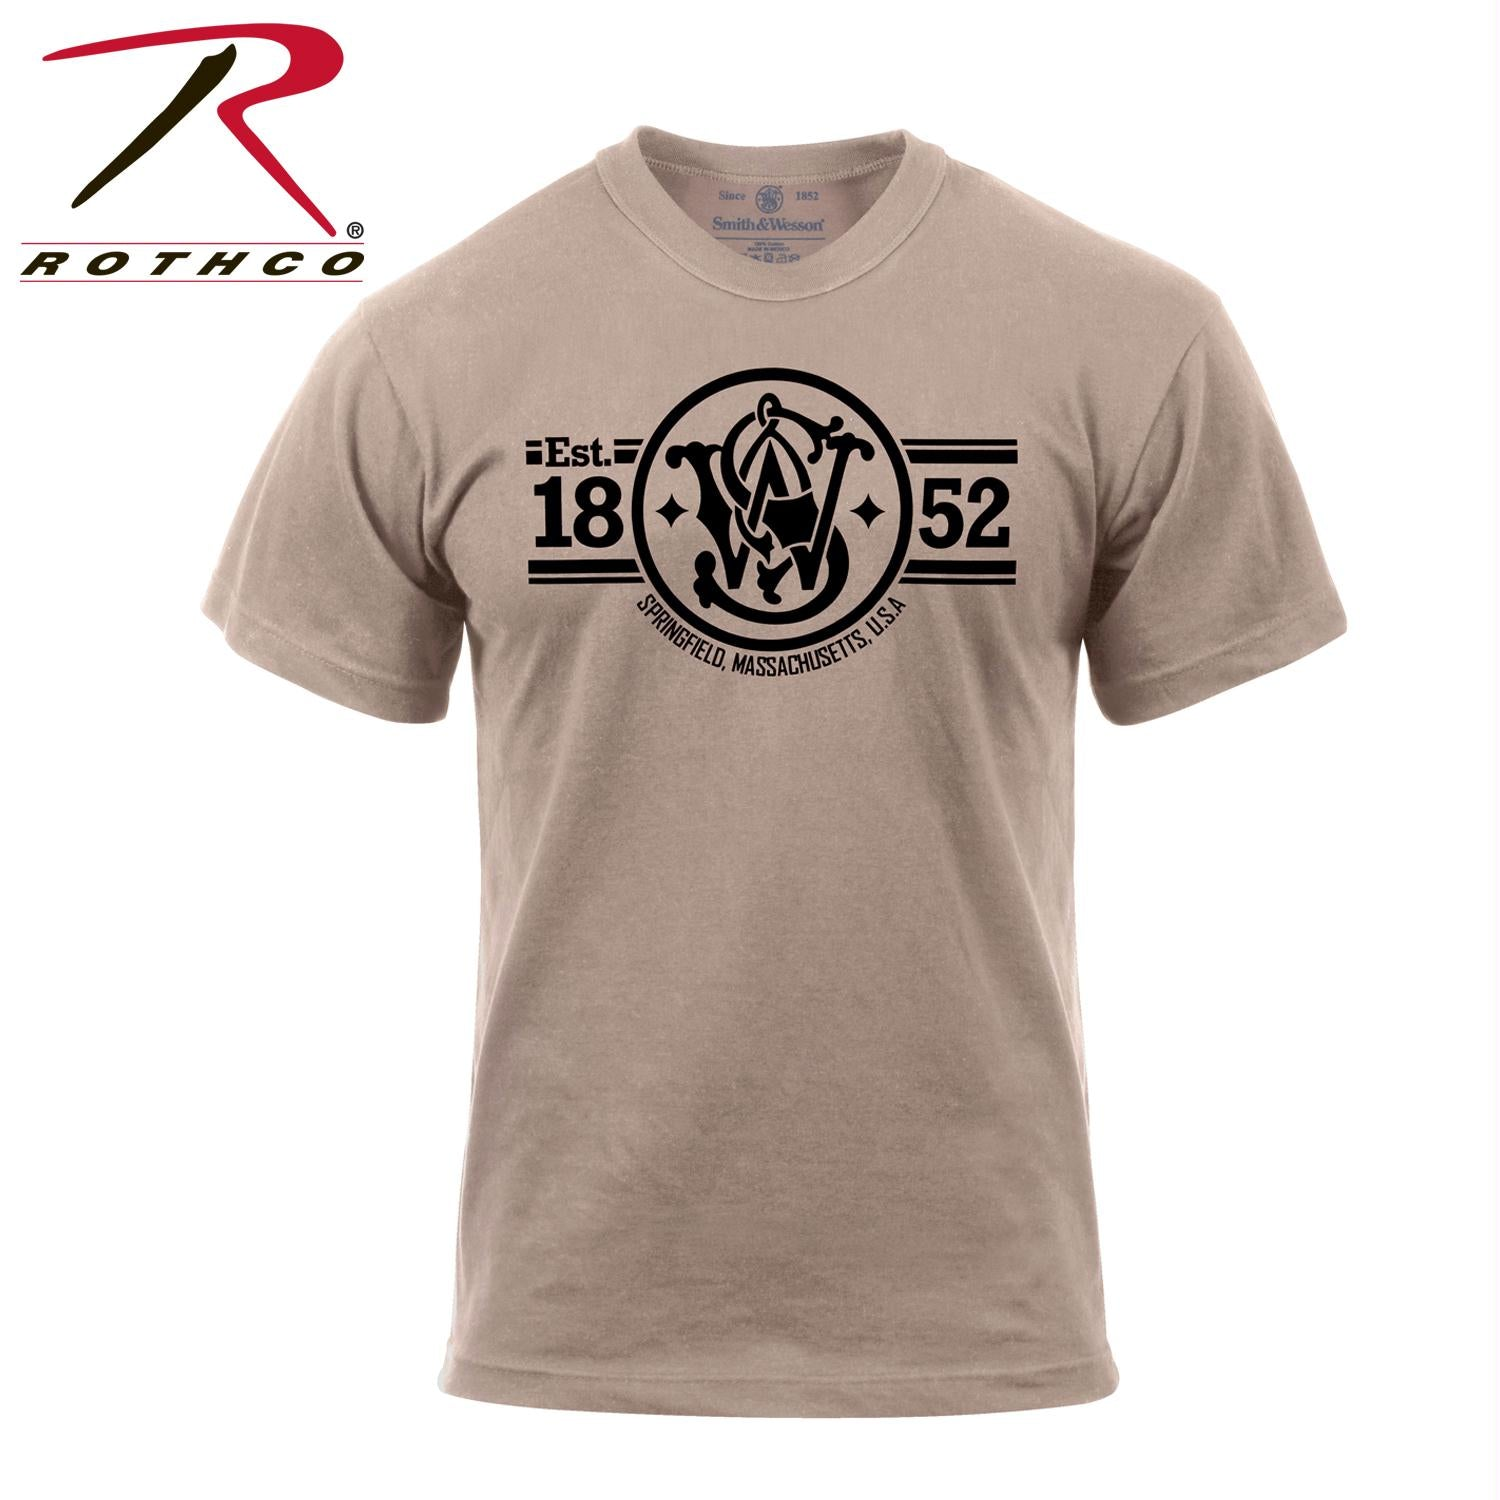 Smith & Wesson Established 1852 T-Shirt - L